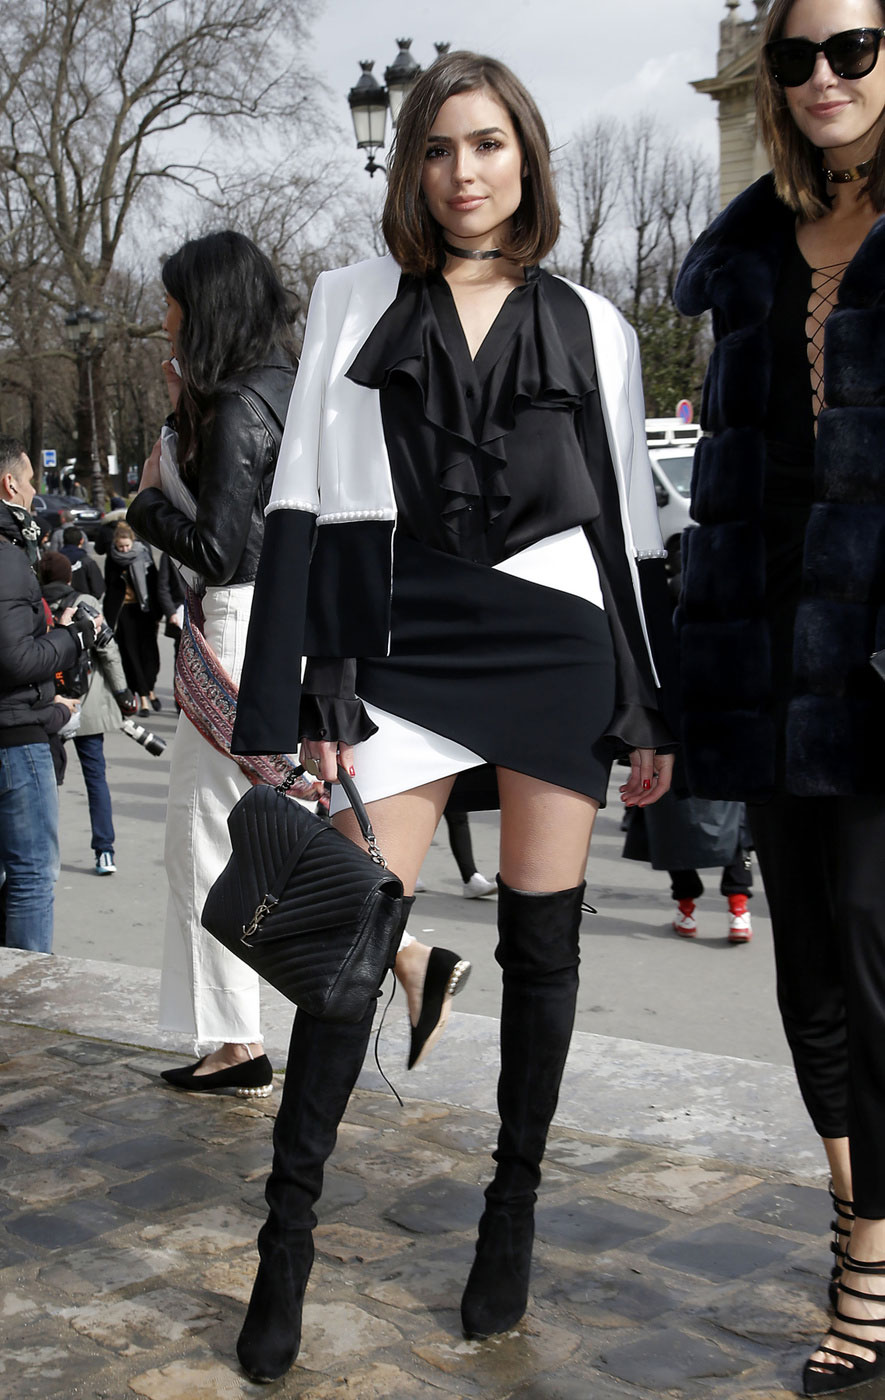 Olivia Culpo attends the Mugler fashion show in Paris.